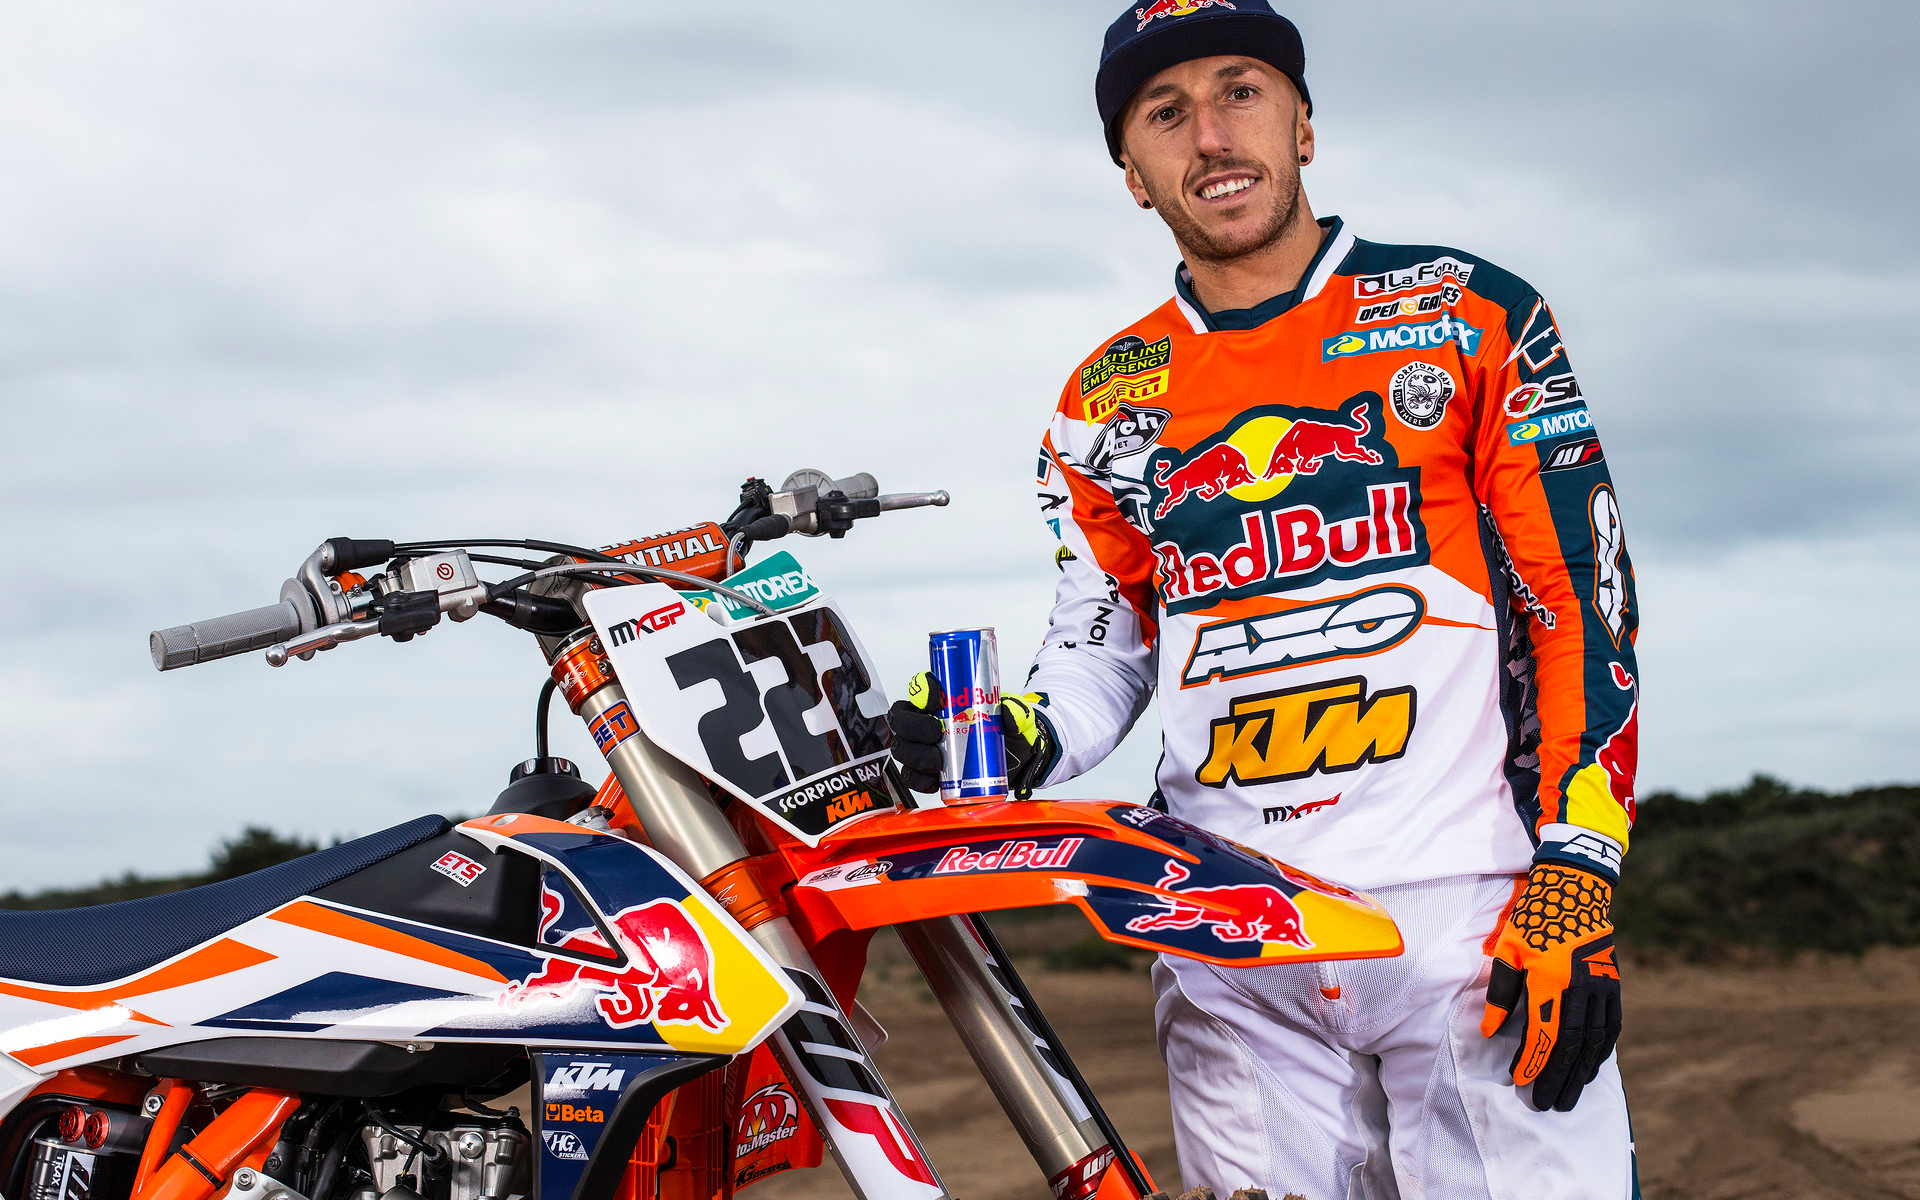 Cairoli-bike-close